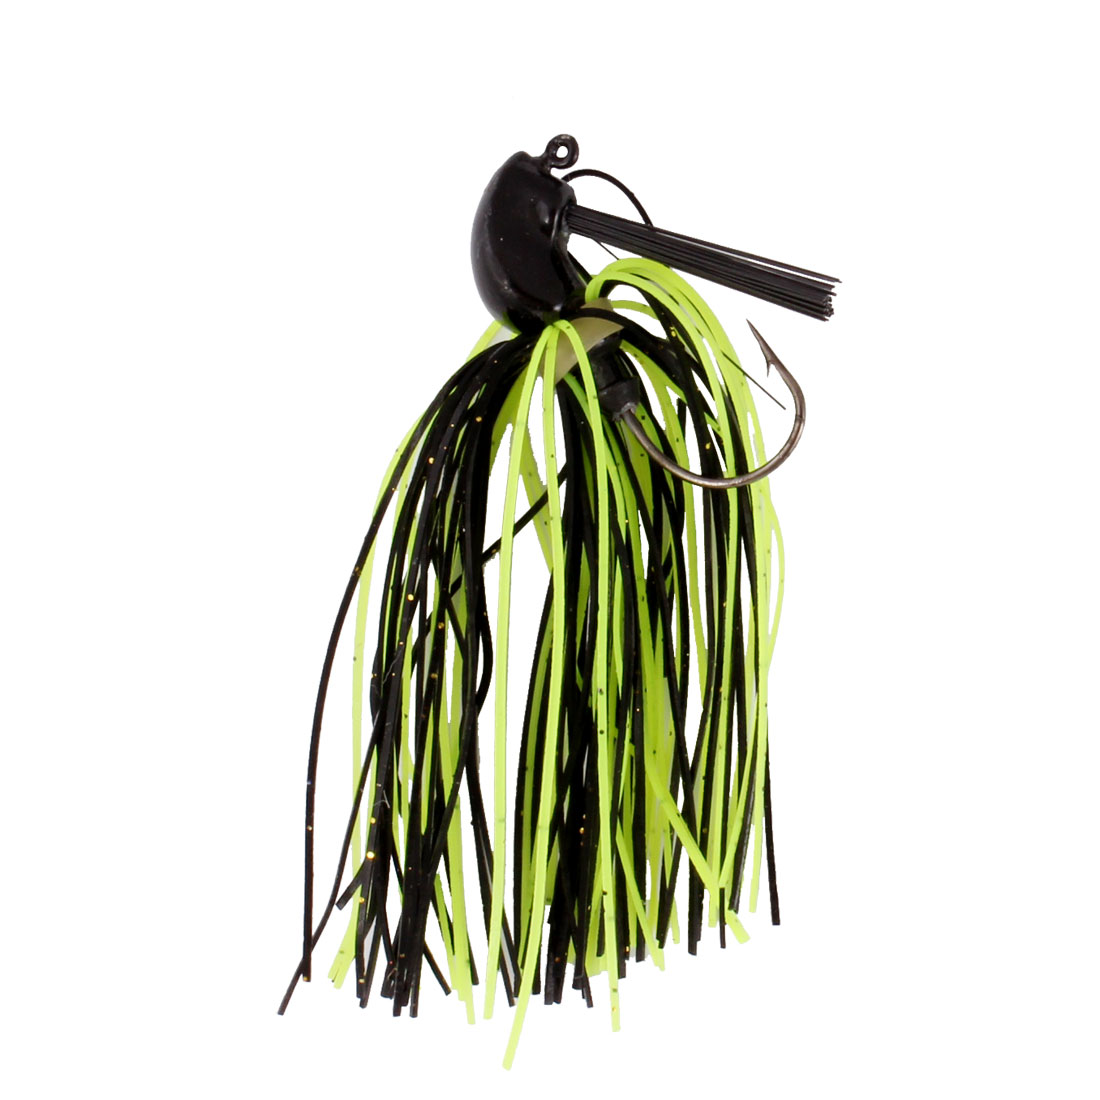 Fishing Tackle Black Green Beard Lure Bait w Fish Hook